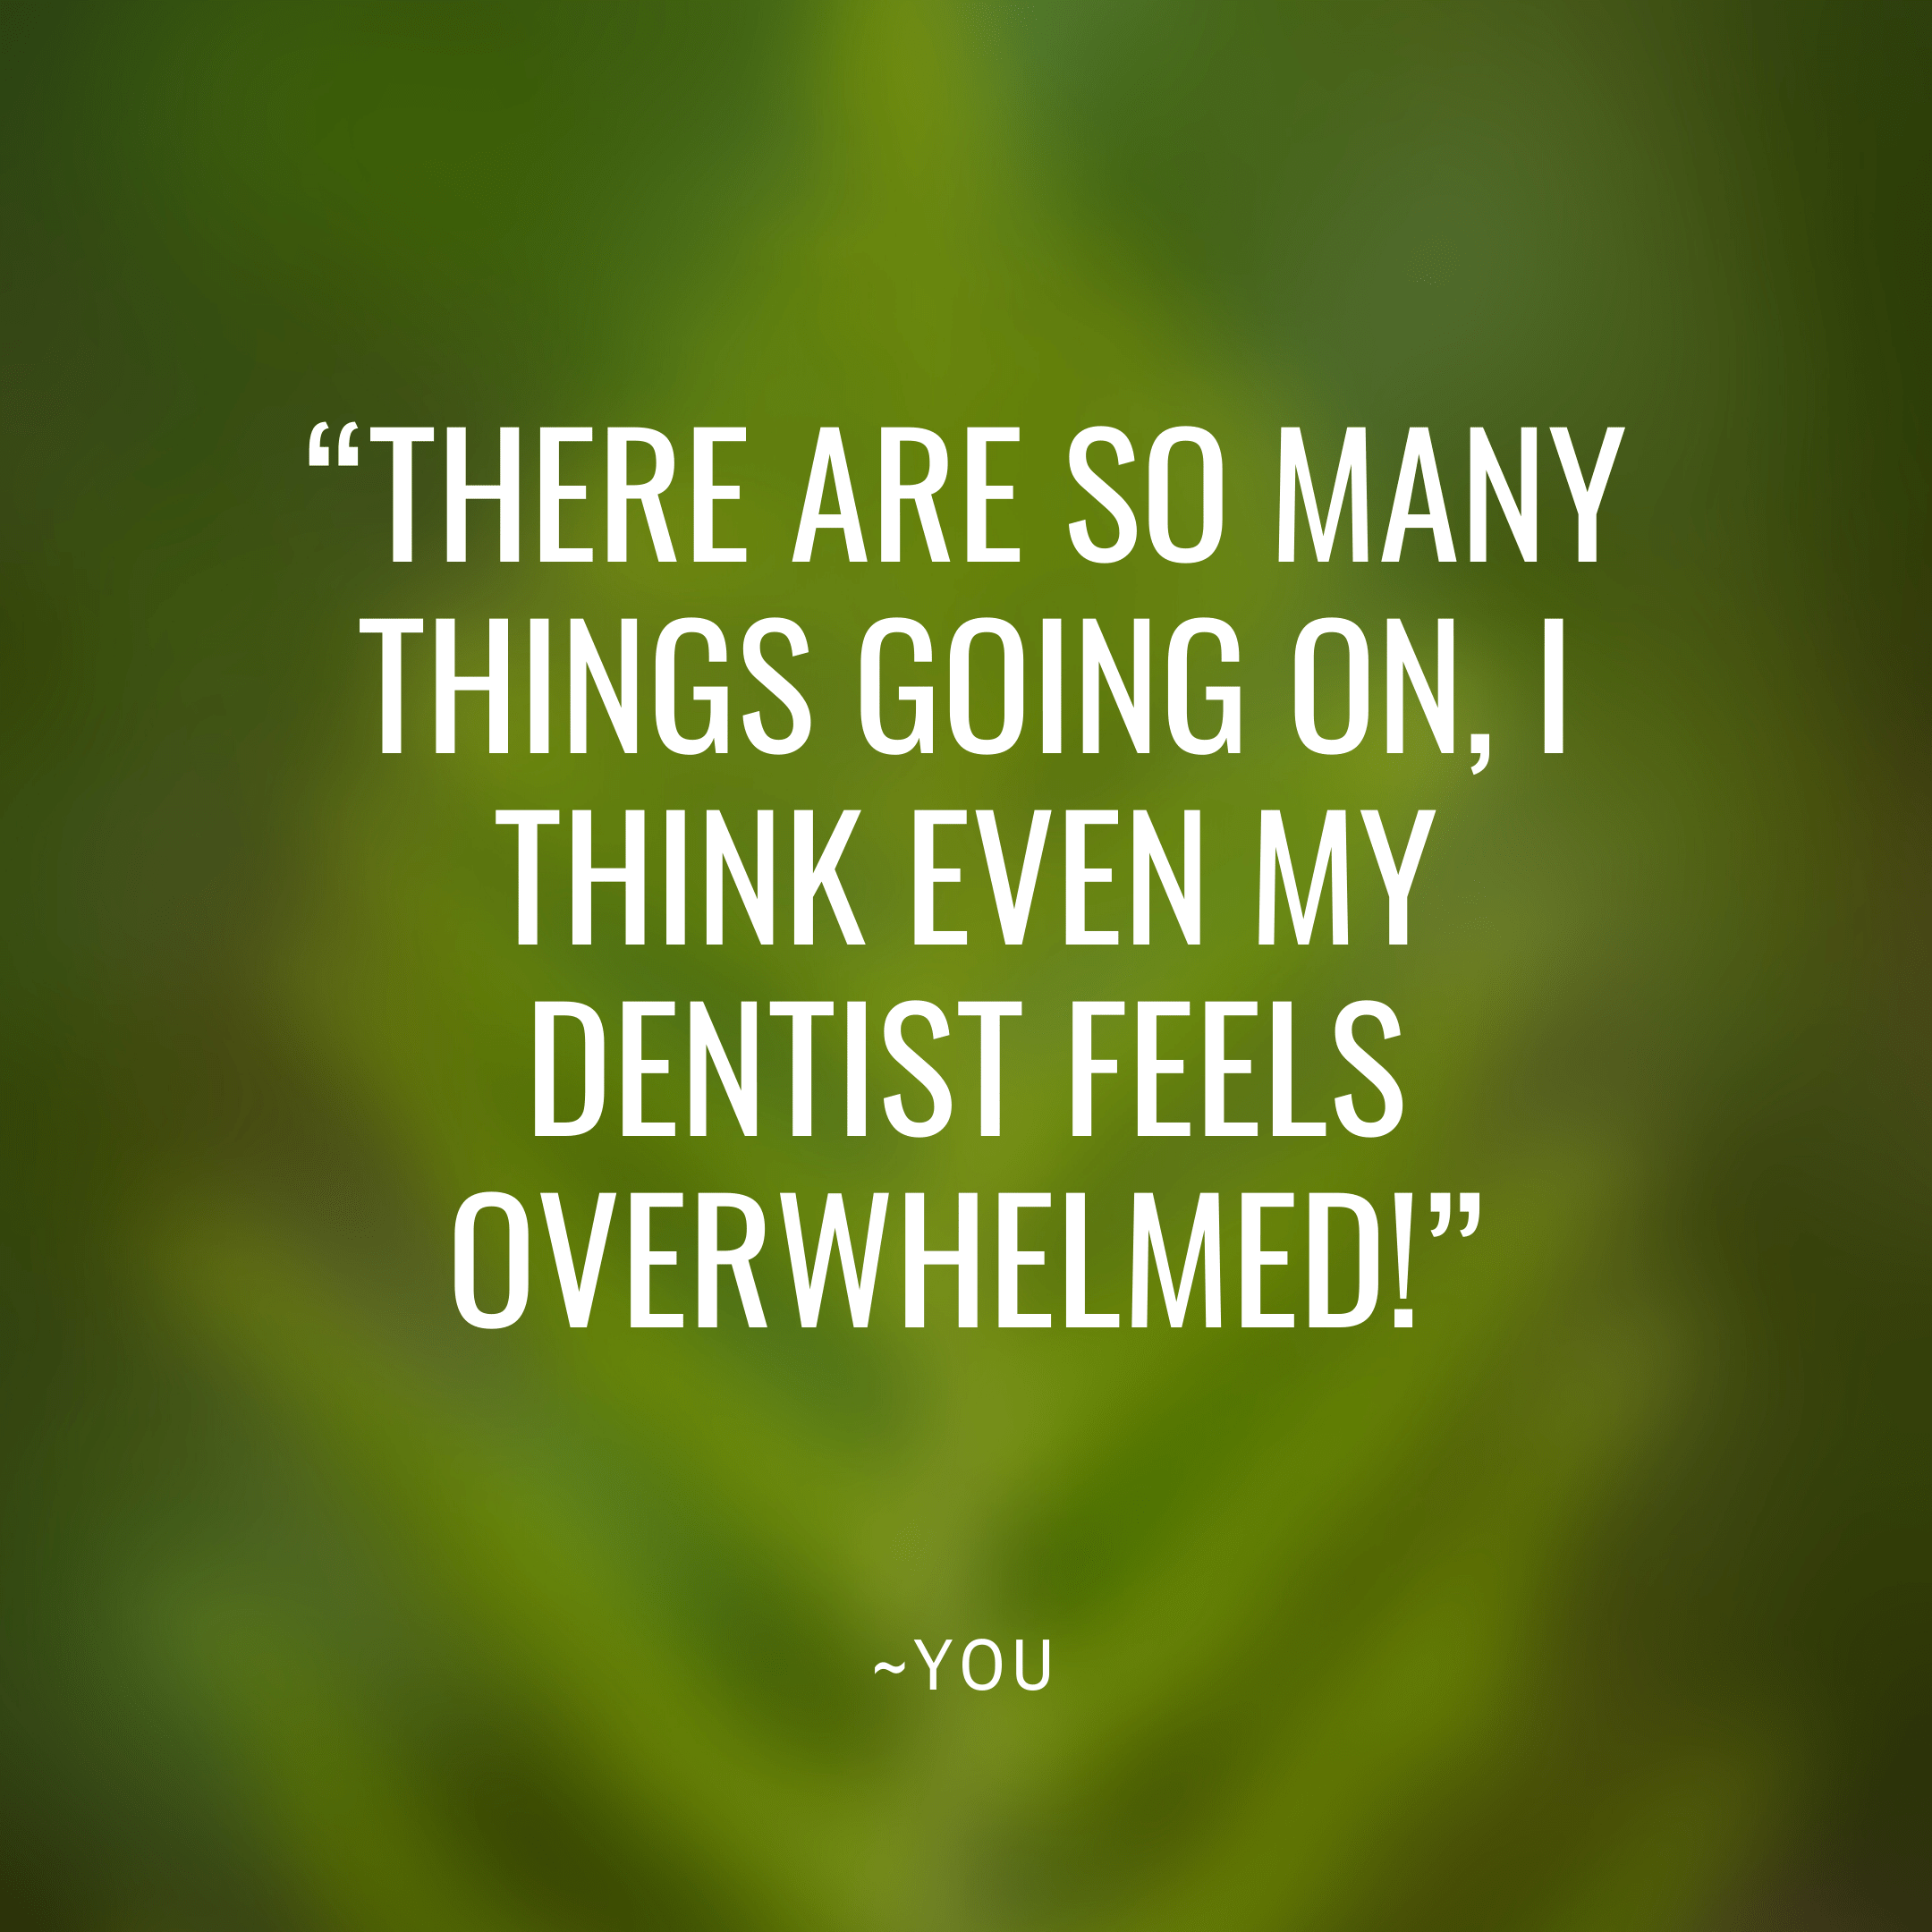 Dr. G's High Level Dentistry Series:  Are you Overwhelmed?